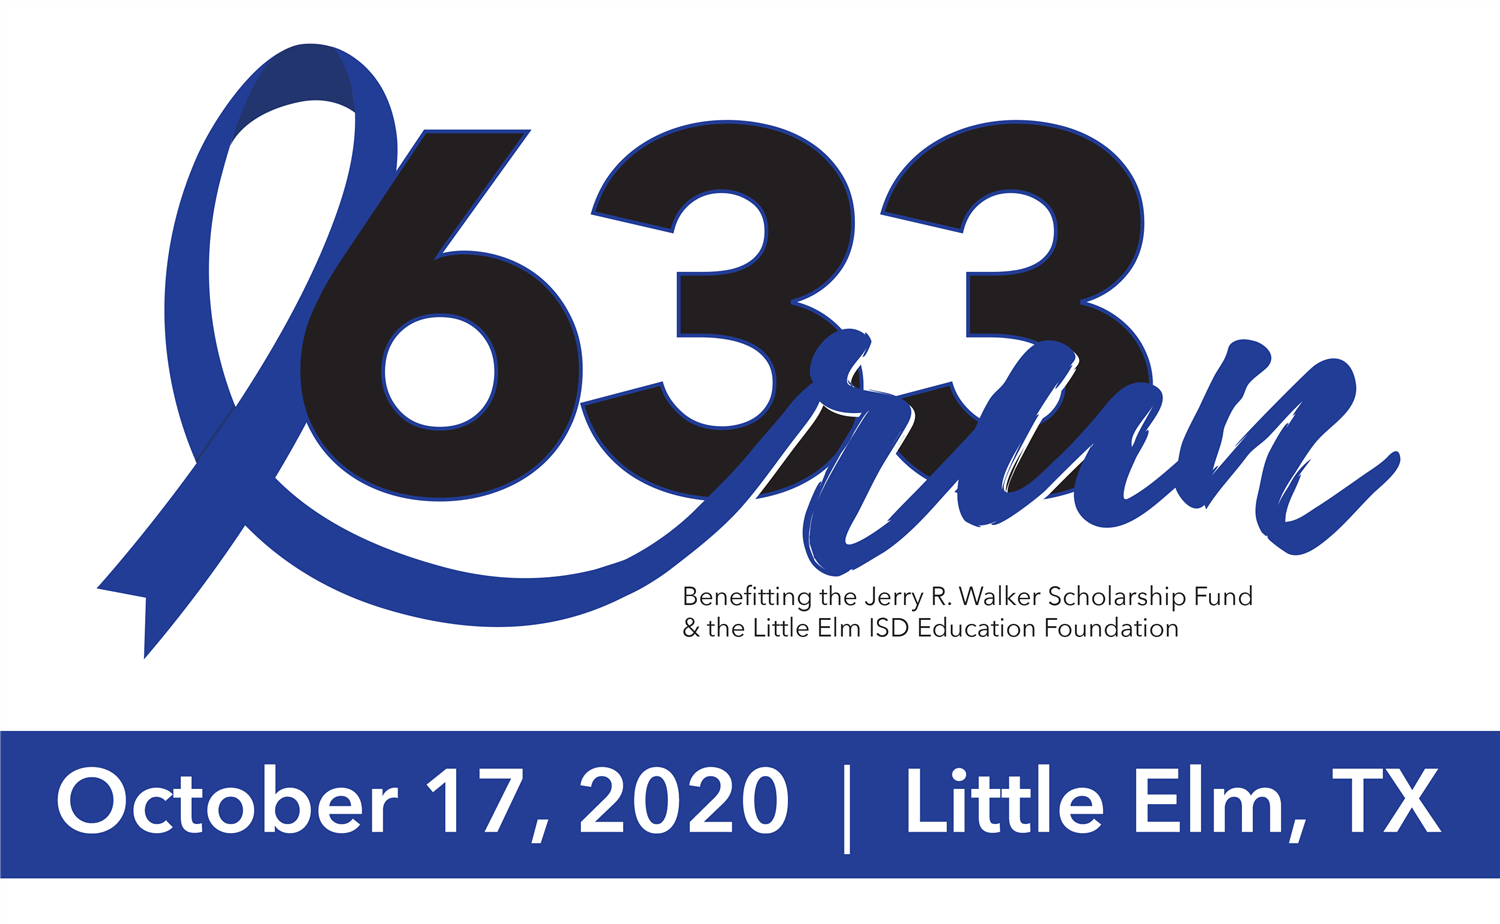 633 Run Registration